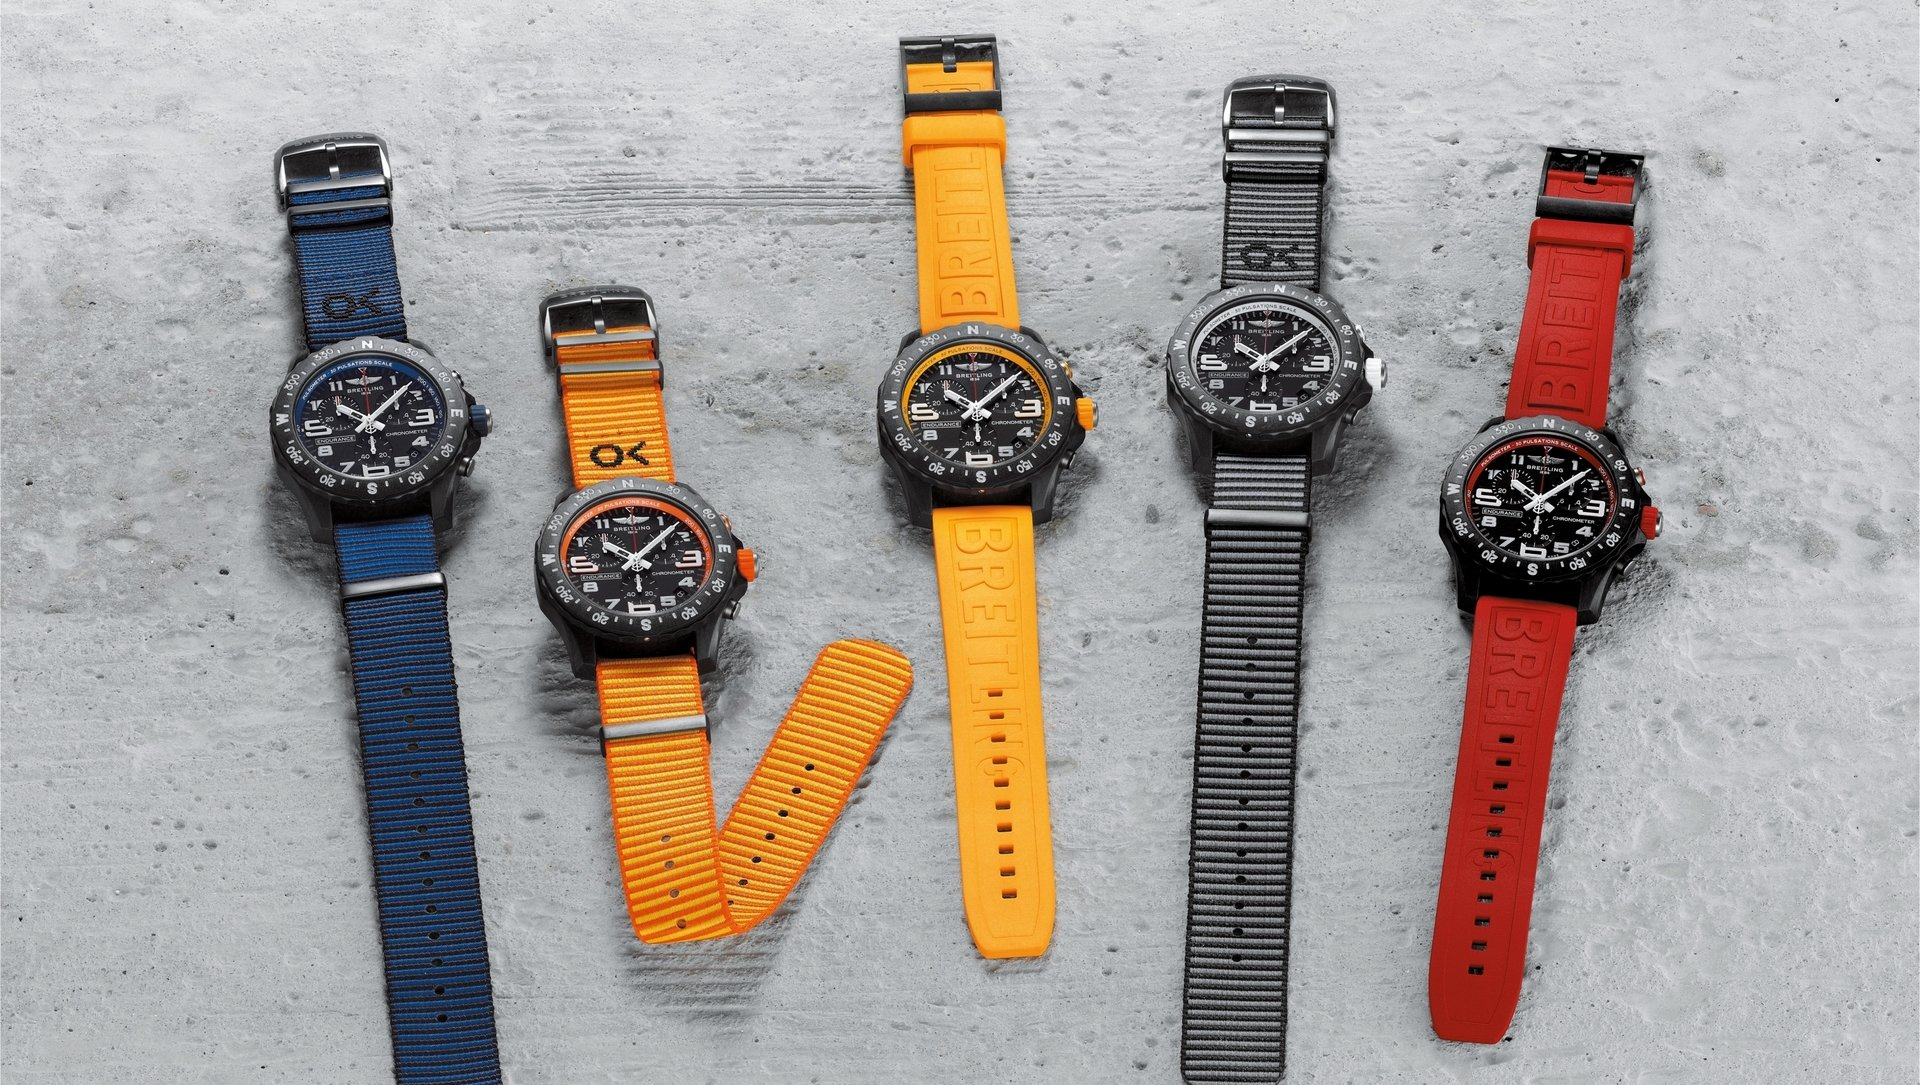 02_the-endurance-pro-collection-with-colorful-rubber-and-econyl-yarn-nato-straps.jpg